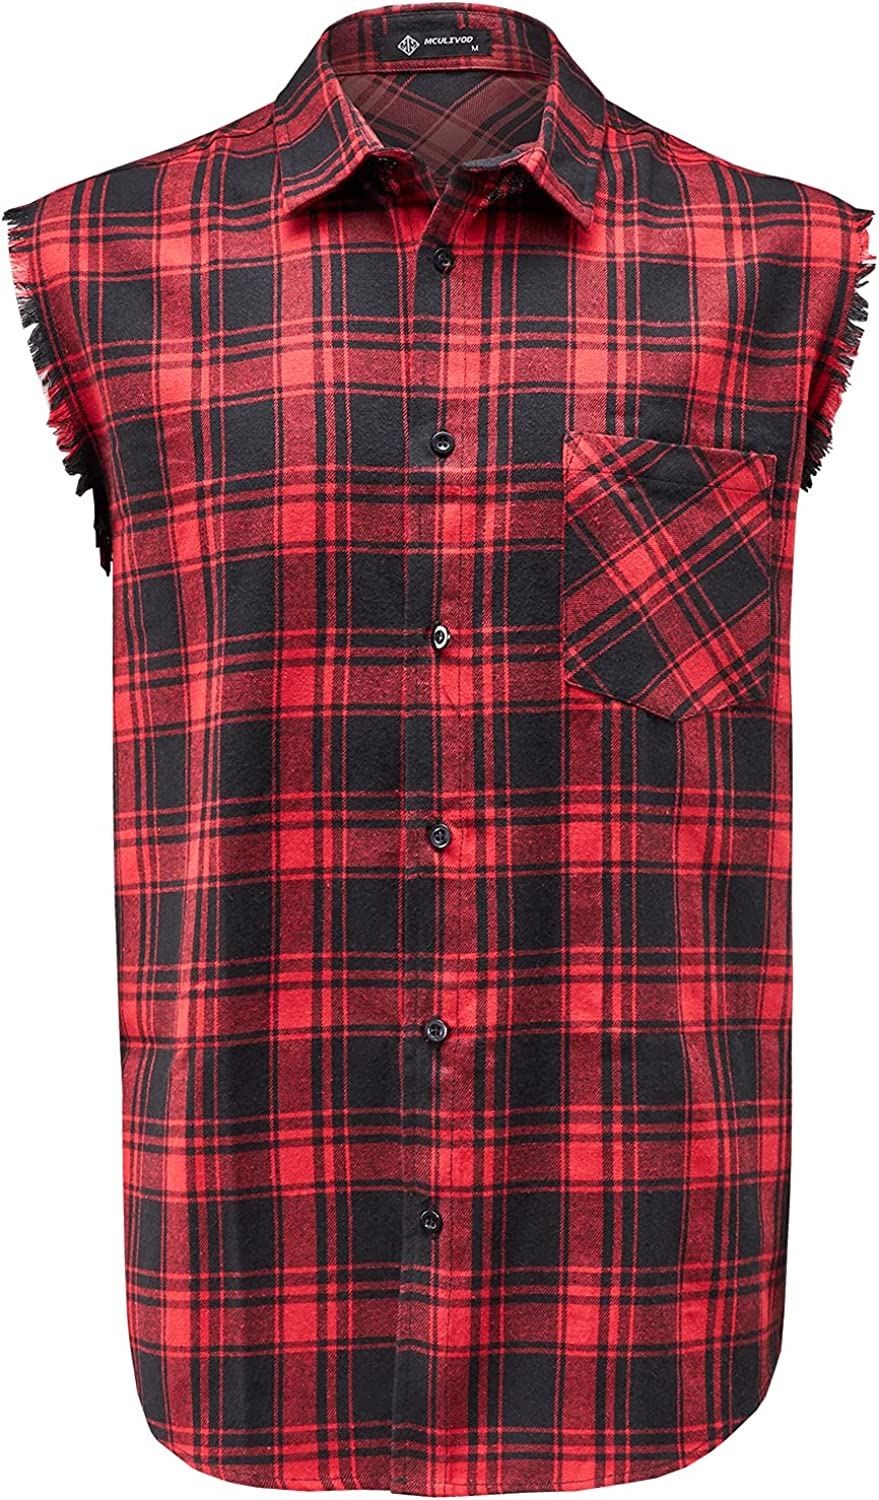 Sleeveless Plaid Front sale Shirt for Men Down Challenge the lowest price of Japan ☆ Shirts Cowboy Button